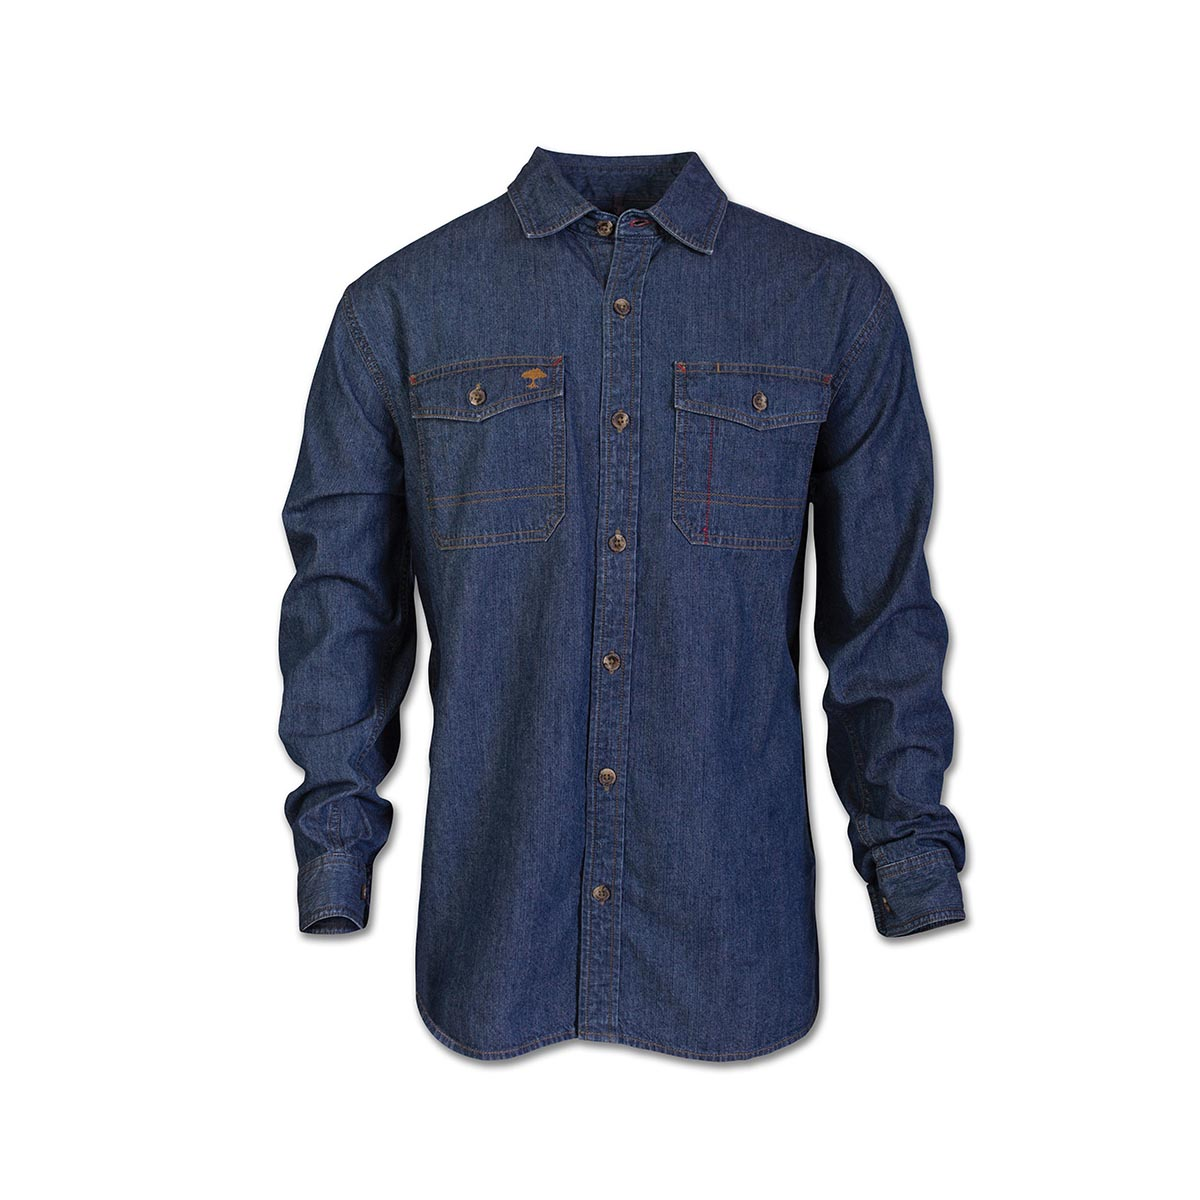 Arborwear Men's Peninsula Denim Shirt